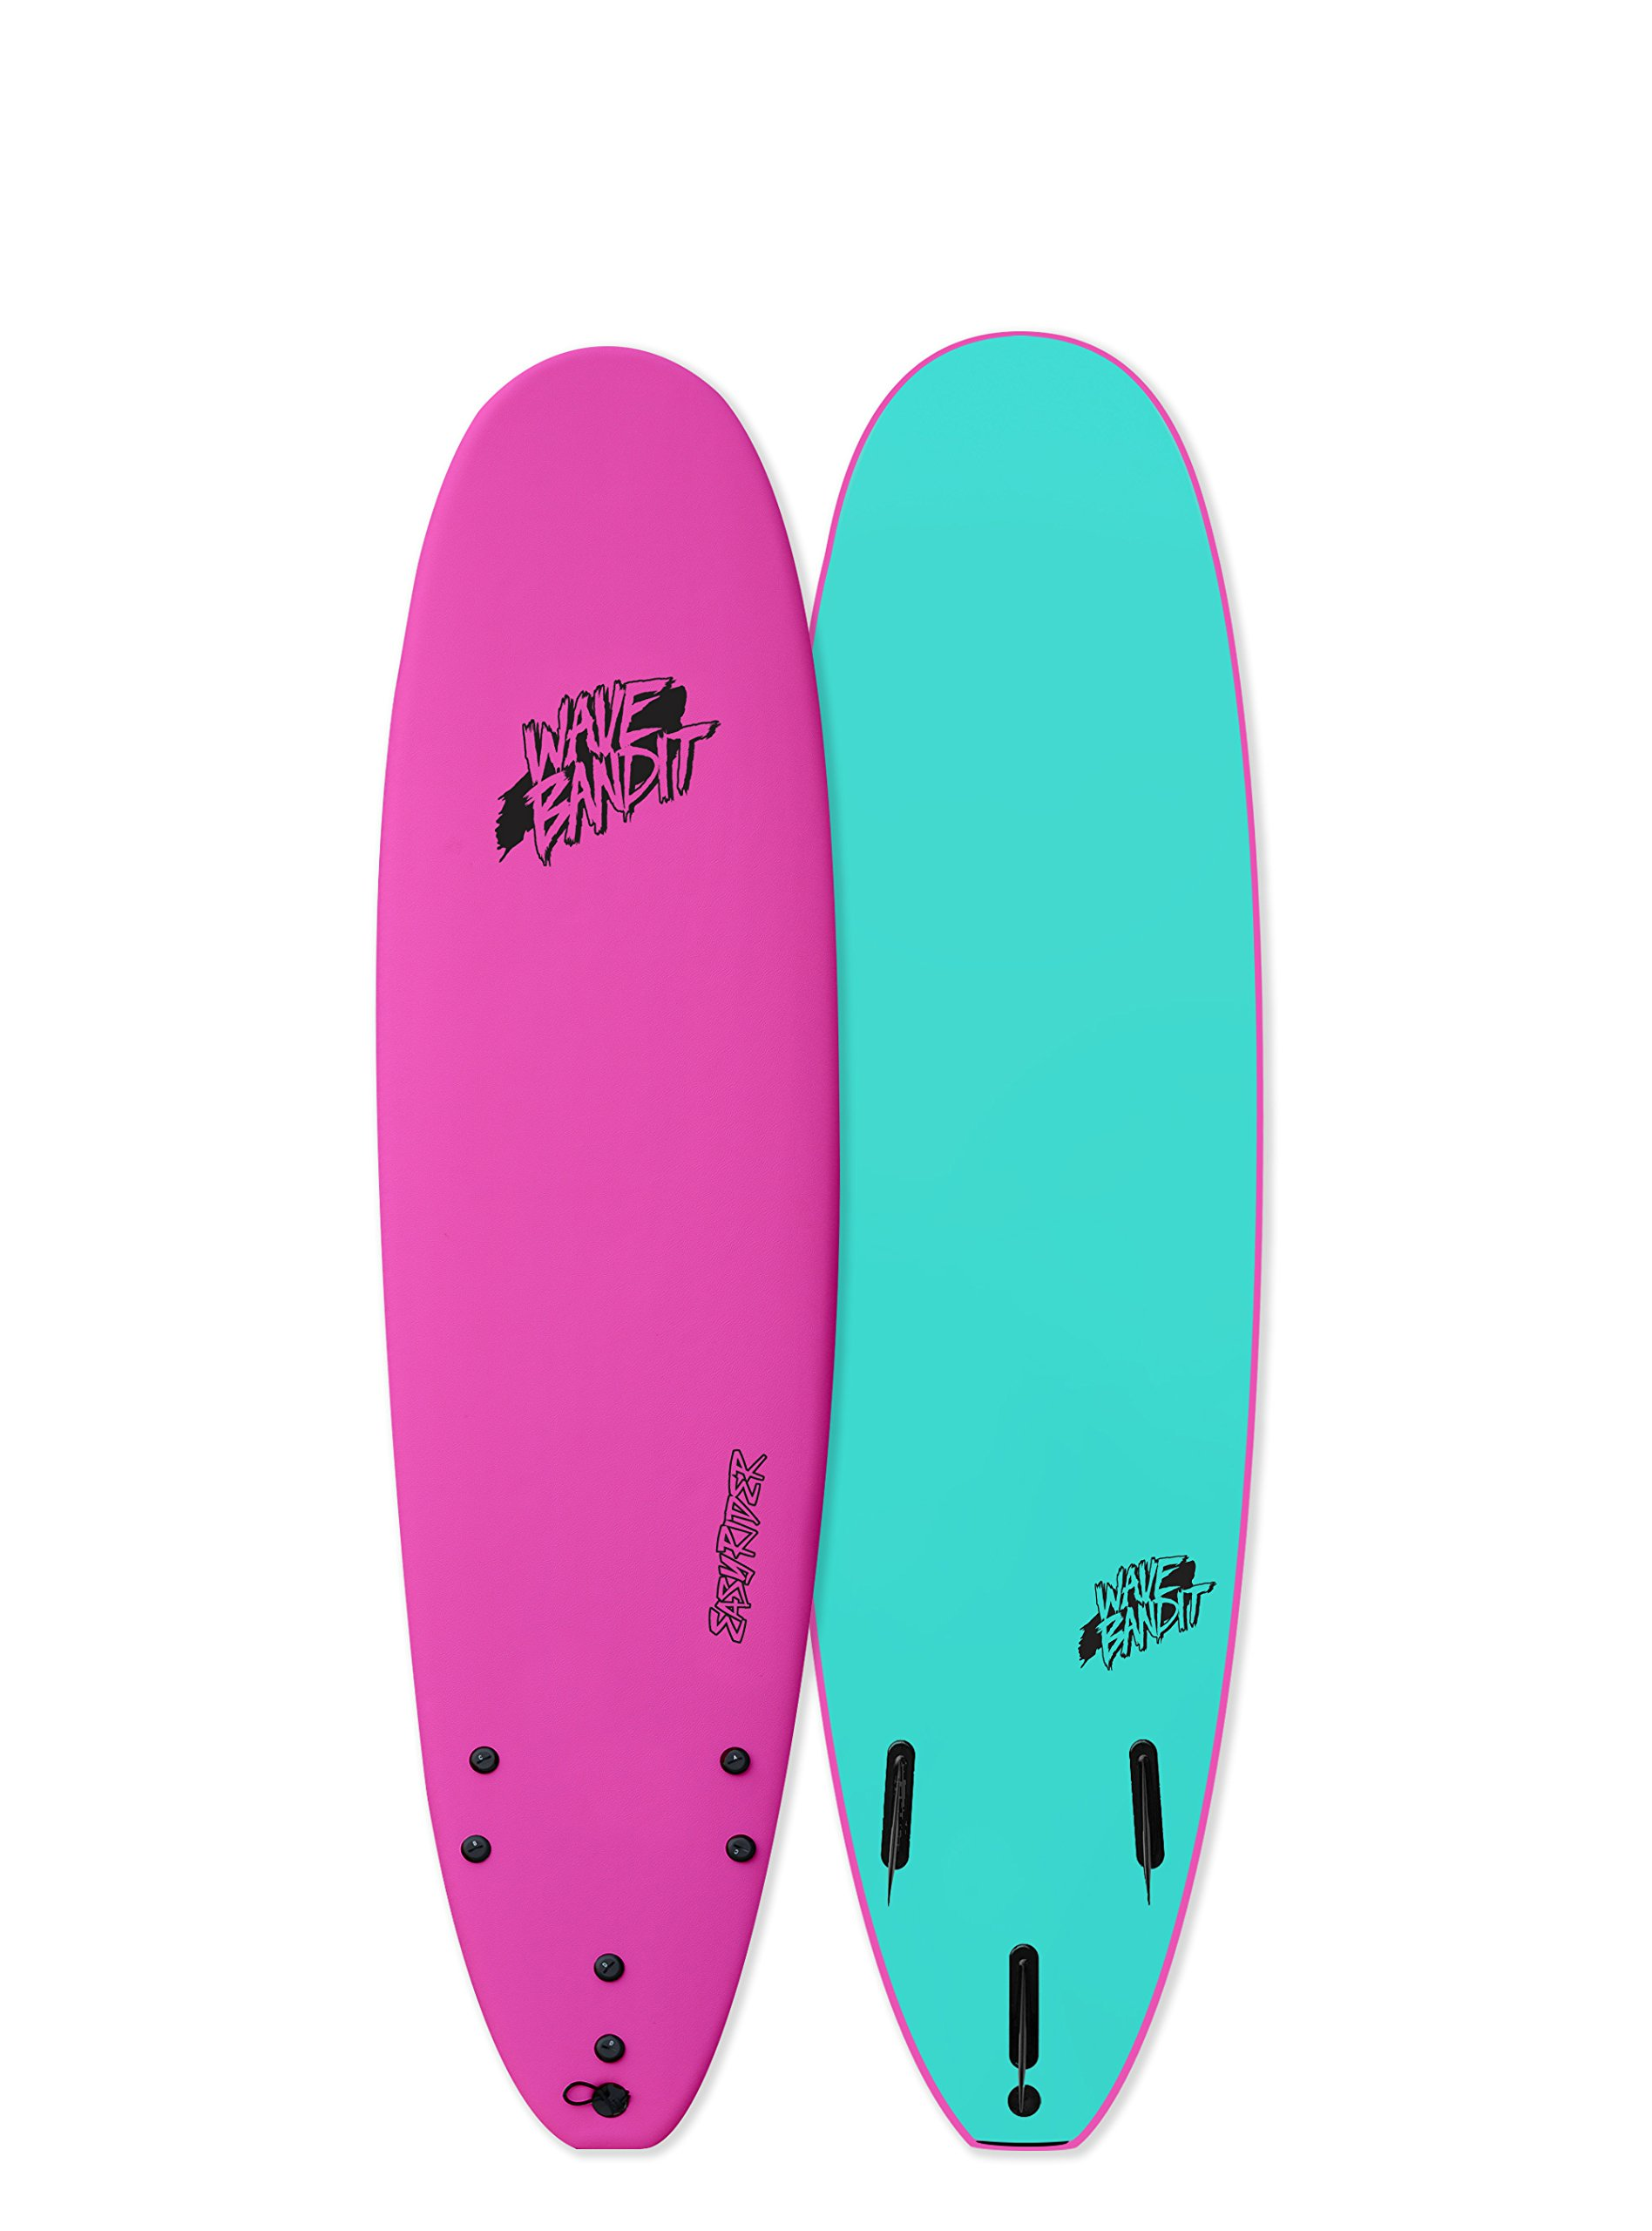 Catch Surf Wave Bandit EZ Rider 7'0'' Short Surf Board, Neon Pink